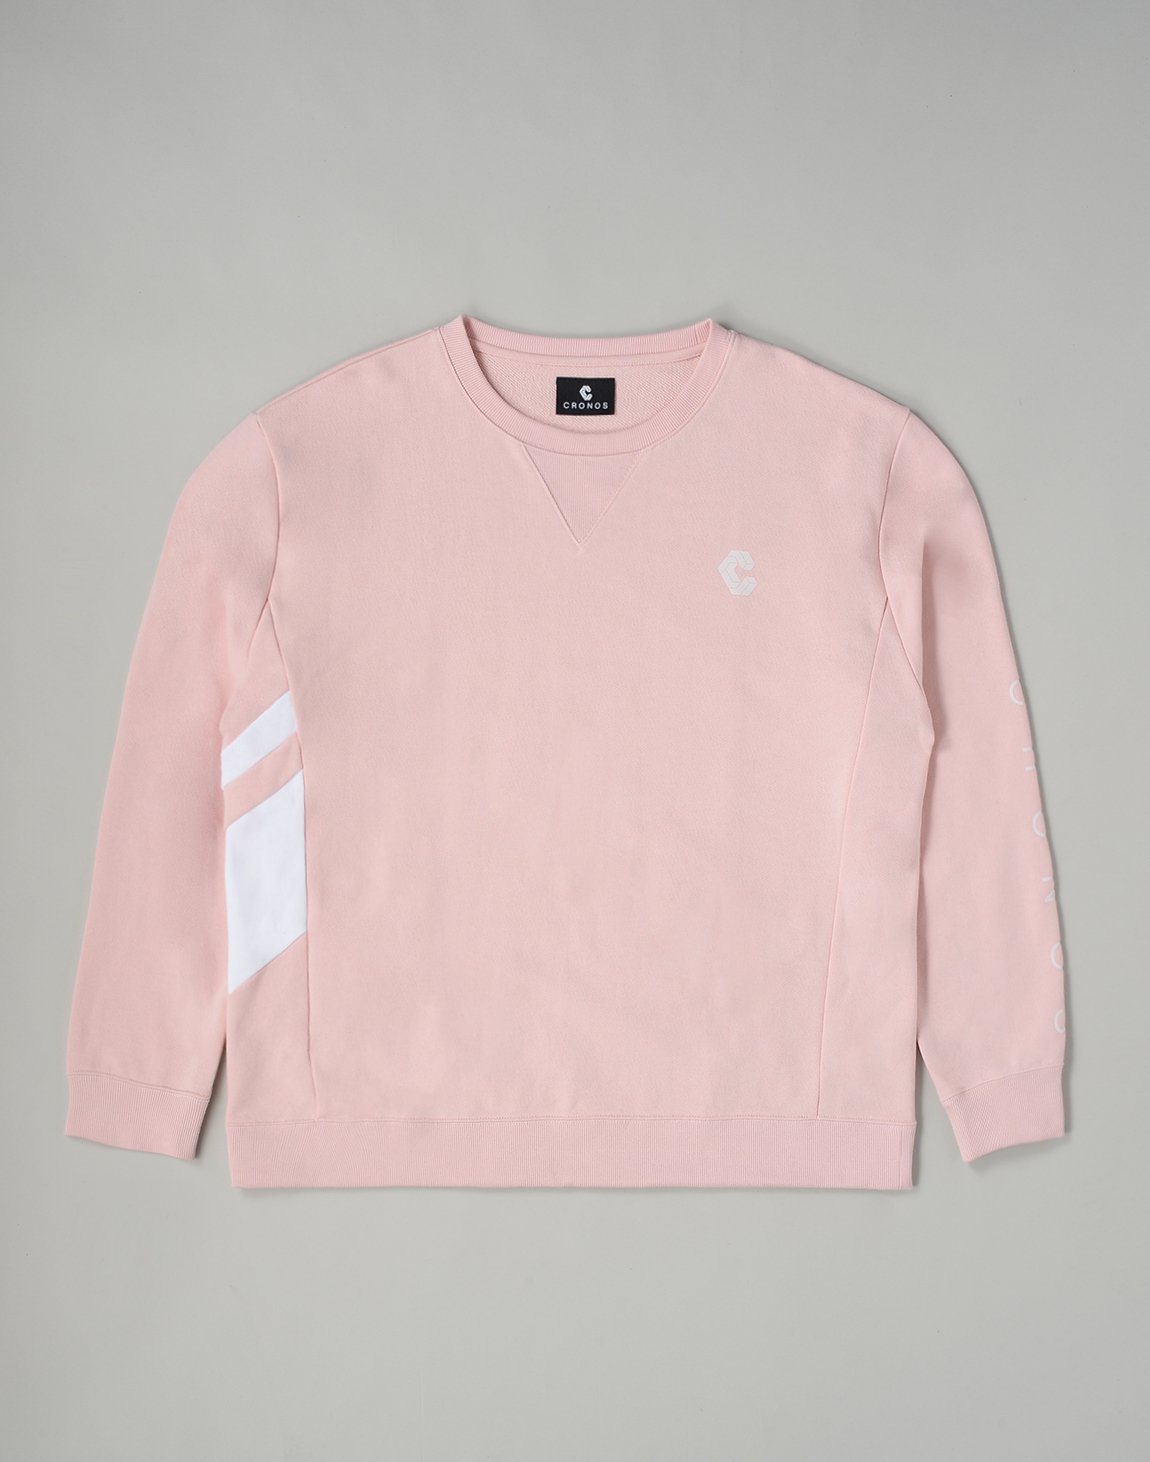 <img class='new_mark_img1' src='https://img.shop-pro.jp/img/new/icons1.gif' style='border:none;display:inline;margin:0px;padding:0px;width:auto;' />CRONOS SLANTED LINE SWEATSHIRT【PINK】